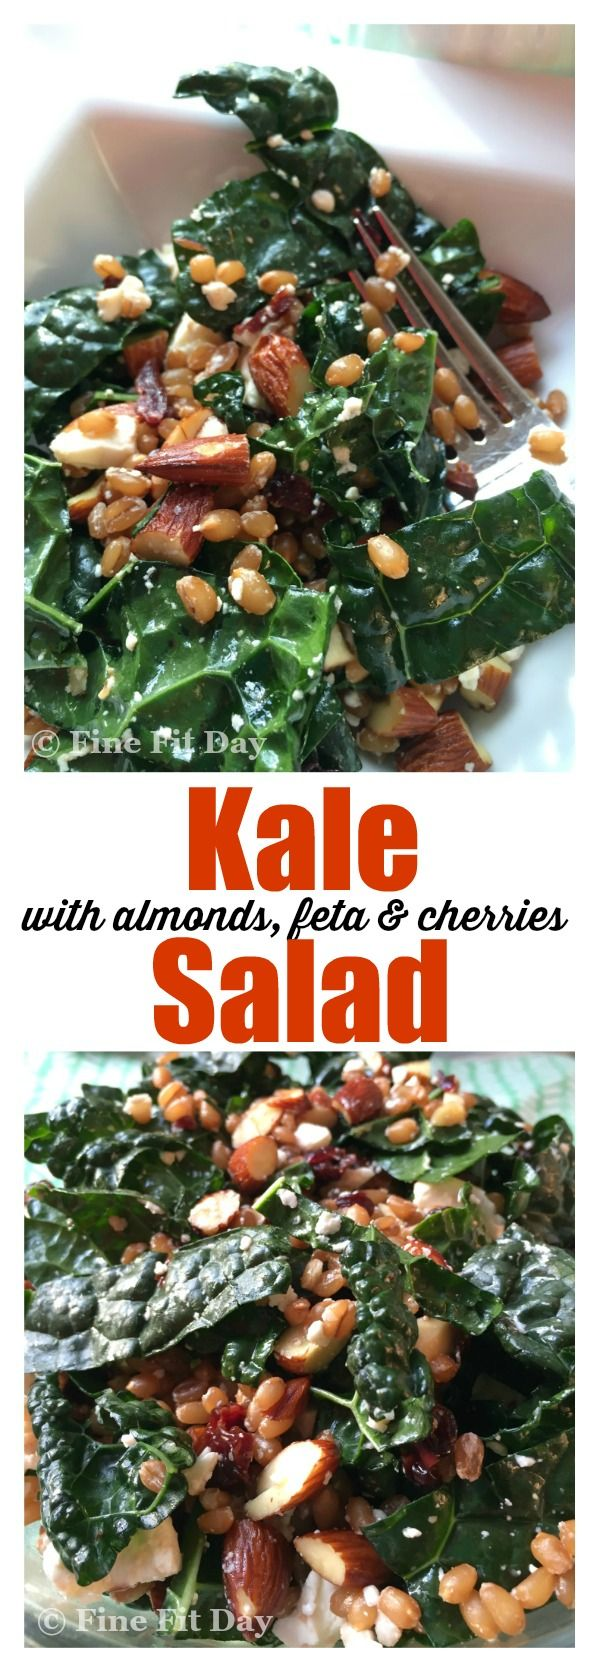 Kale Salad with Almonds, Feta and Cherries - this recipe for kale salad is simple to prepare and tastes delicious. With wheat berries (farro) in the ingredients, it is a filling salad, side dish, or yummy meal. You can also prepare it ahead of time - it gets even better as the flavors combine! | healthy recipe | vegetarian | recipes | dinner idea |